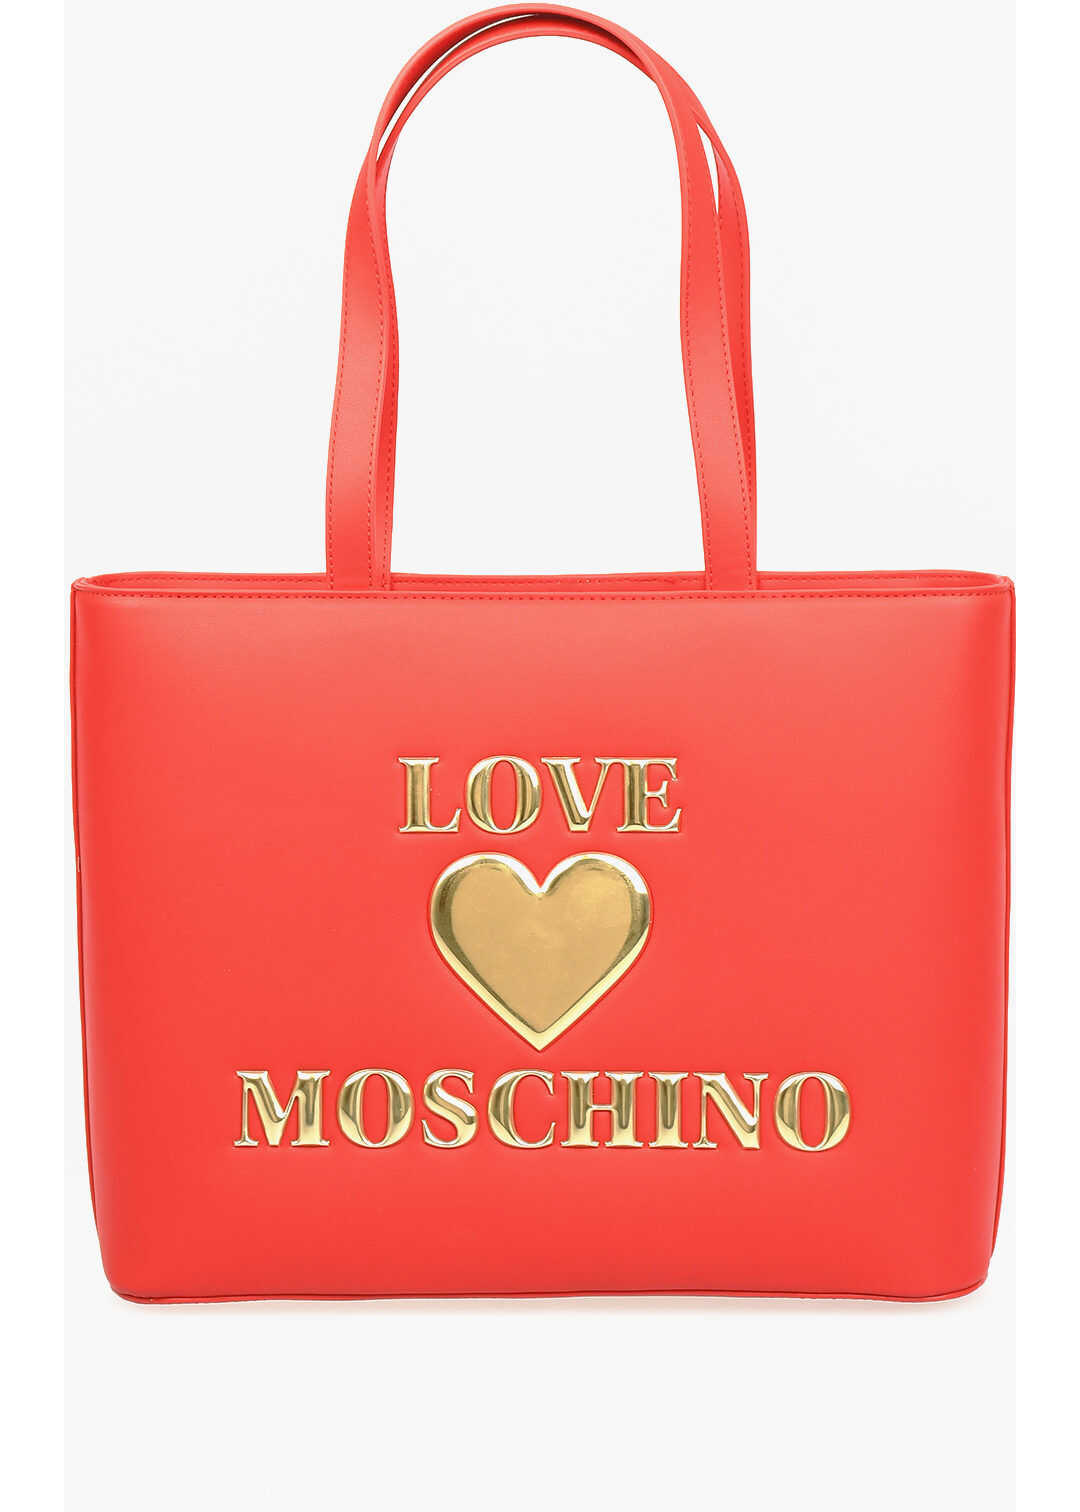 Moschino LOVE Faux Leather PADDED SHINY HEART Bag RED imagine b-mall.ro